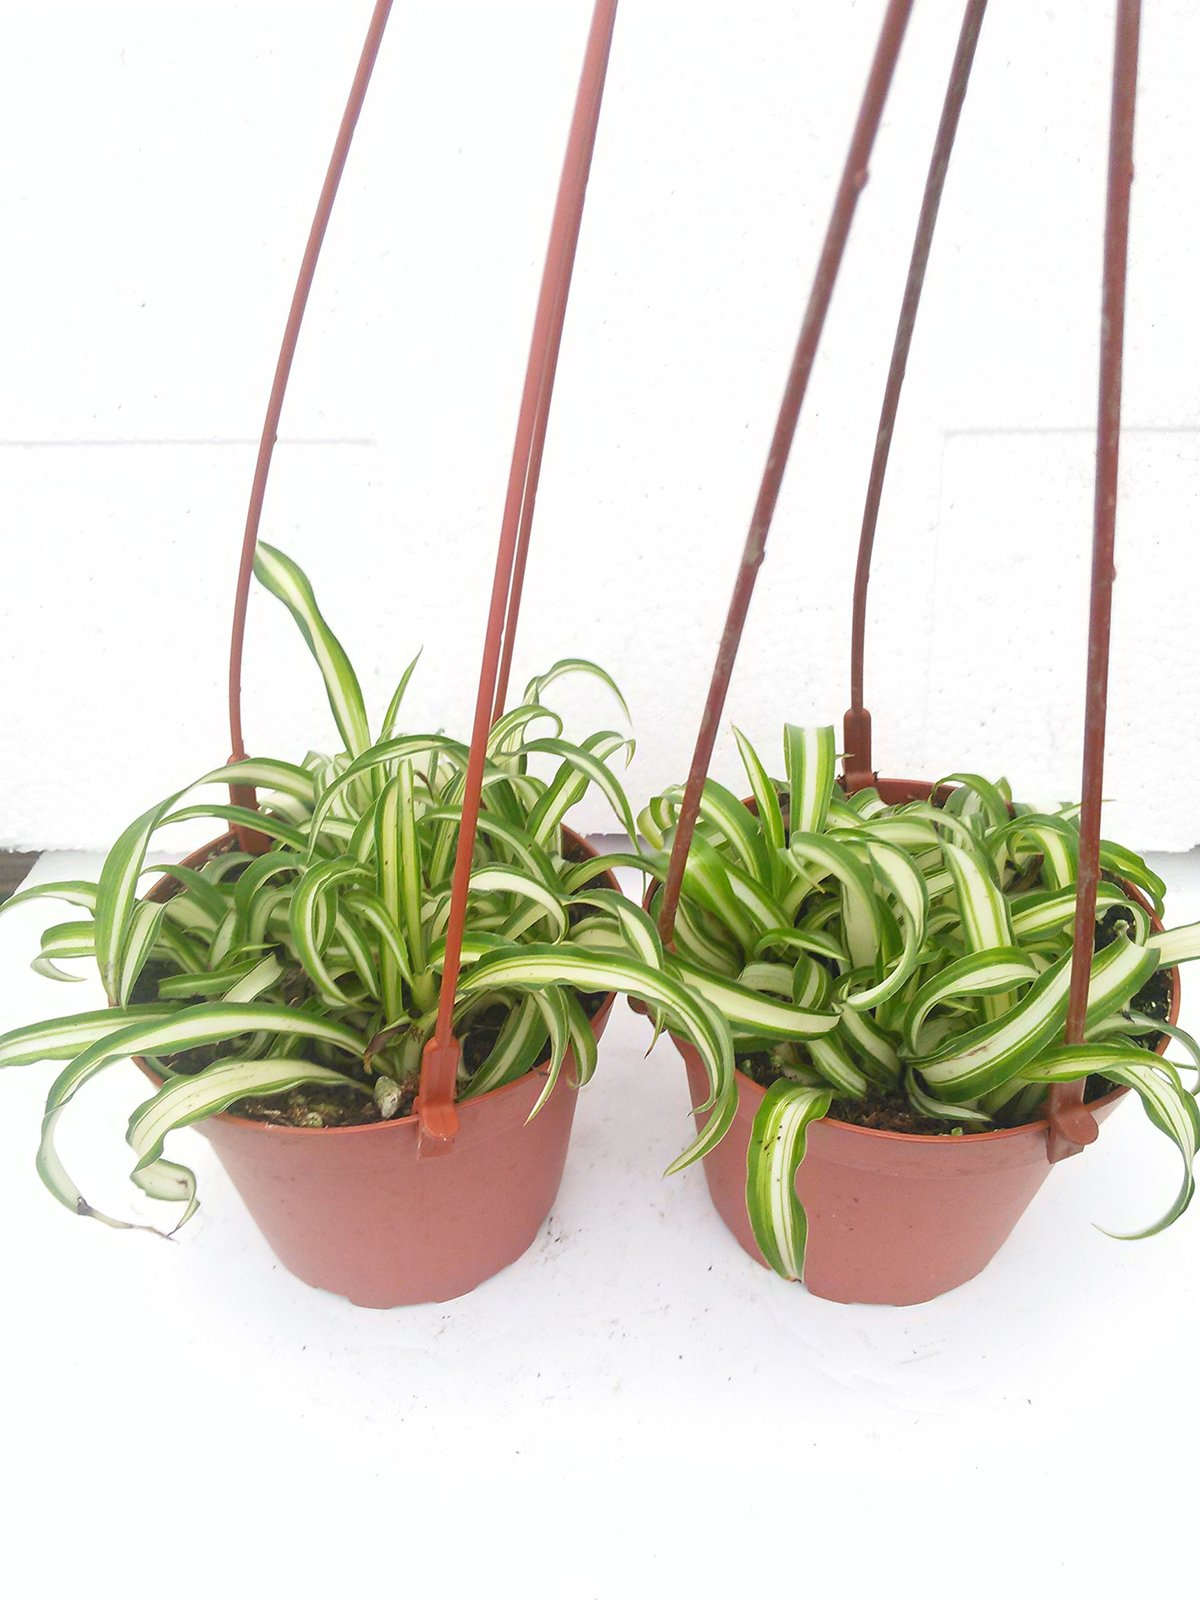 "*Two Bonnie Curly Spider Plant Easy Cleans the Air - 4"" Pot- Unique From Jmba..."